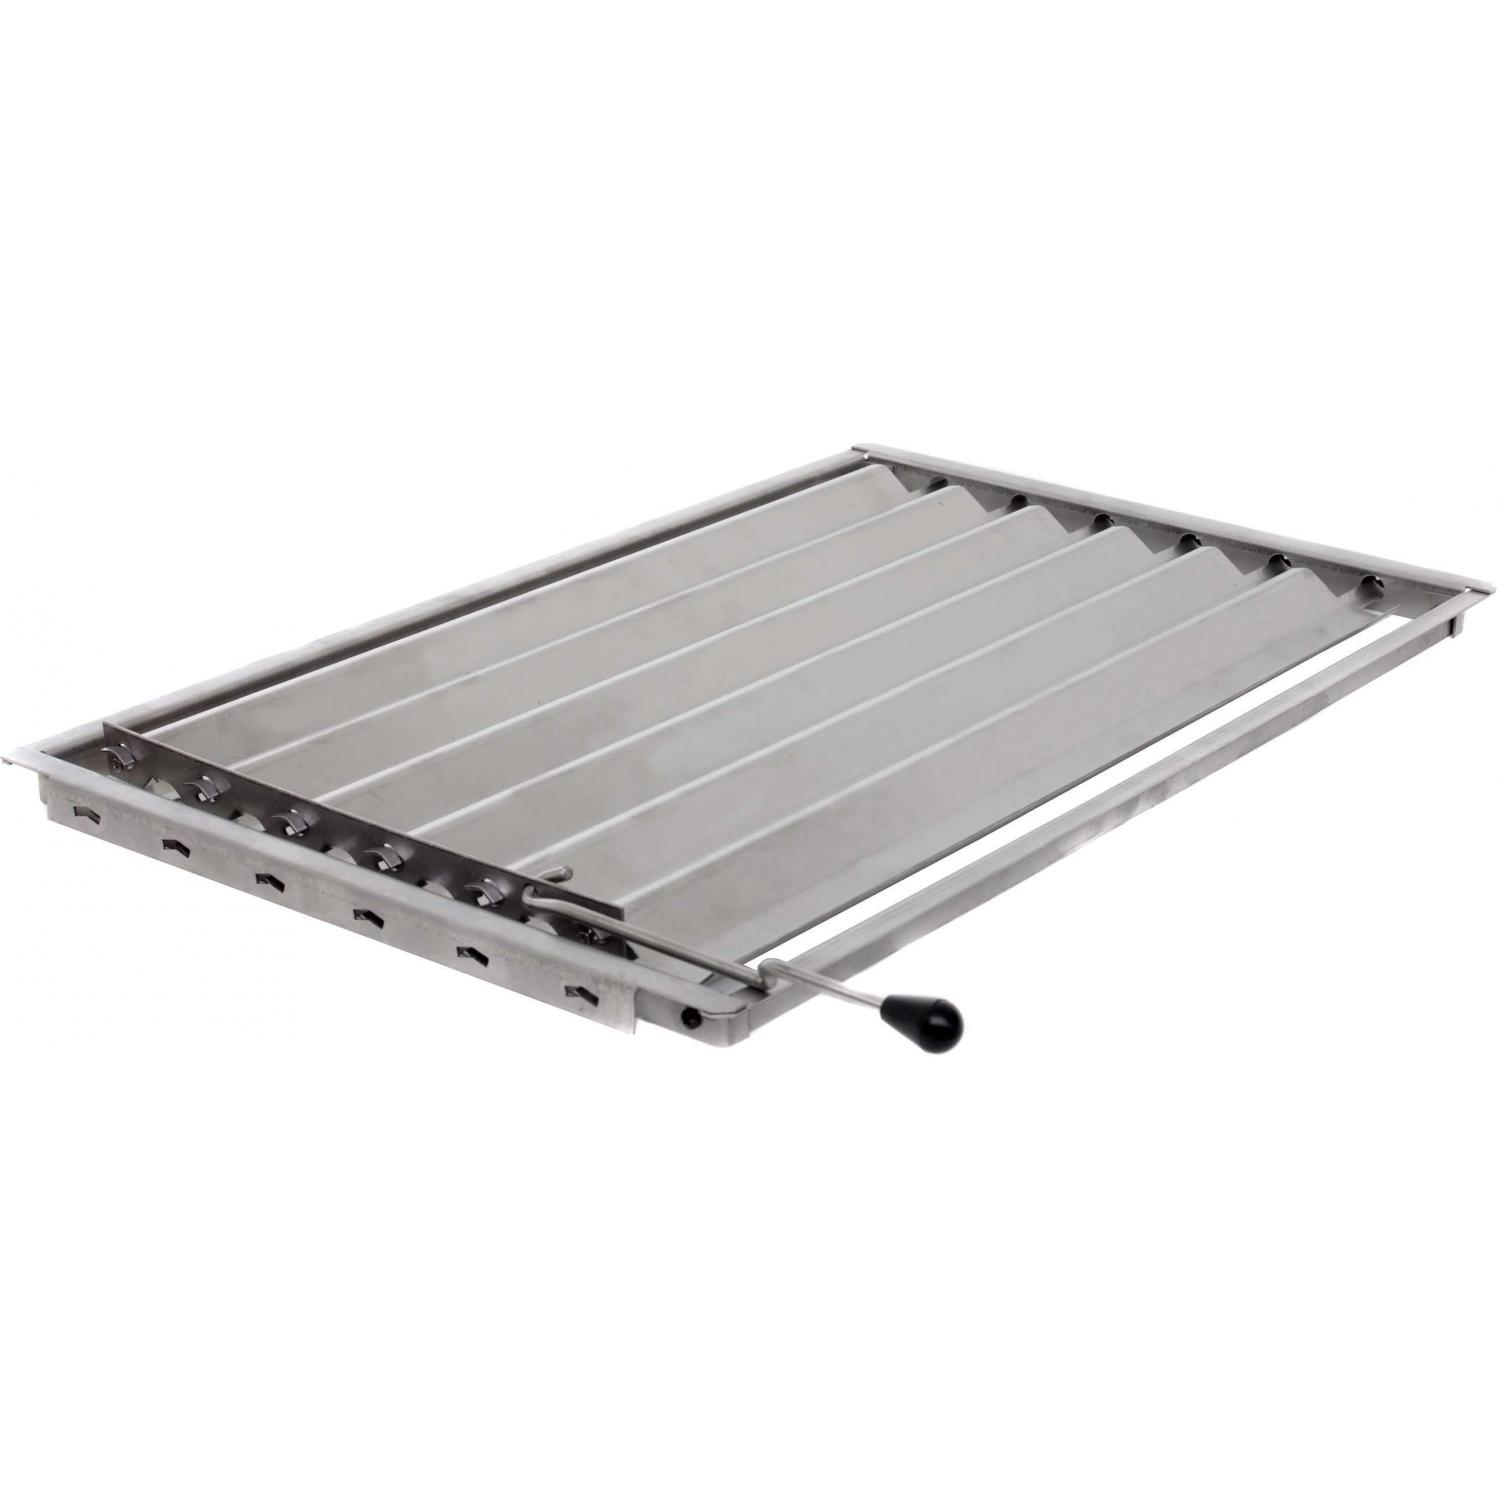 Broilmaster Stainless Steel Smoker Shutter For P3X And P3XF Series Grills